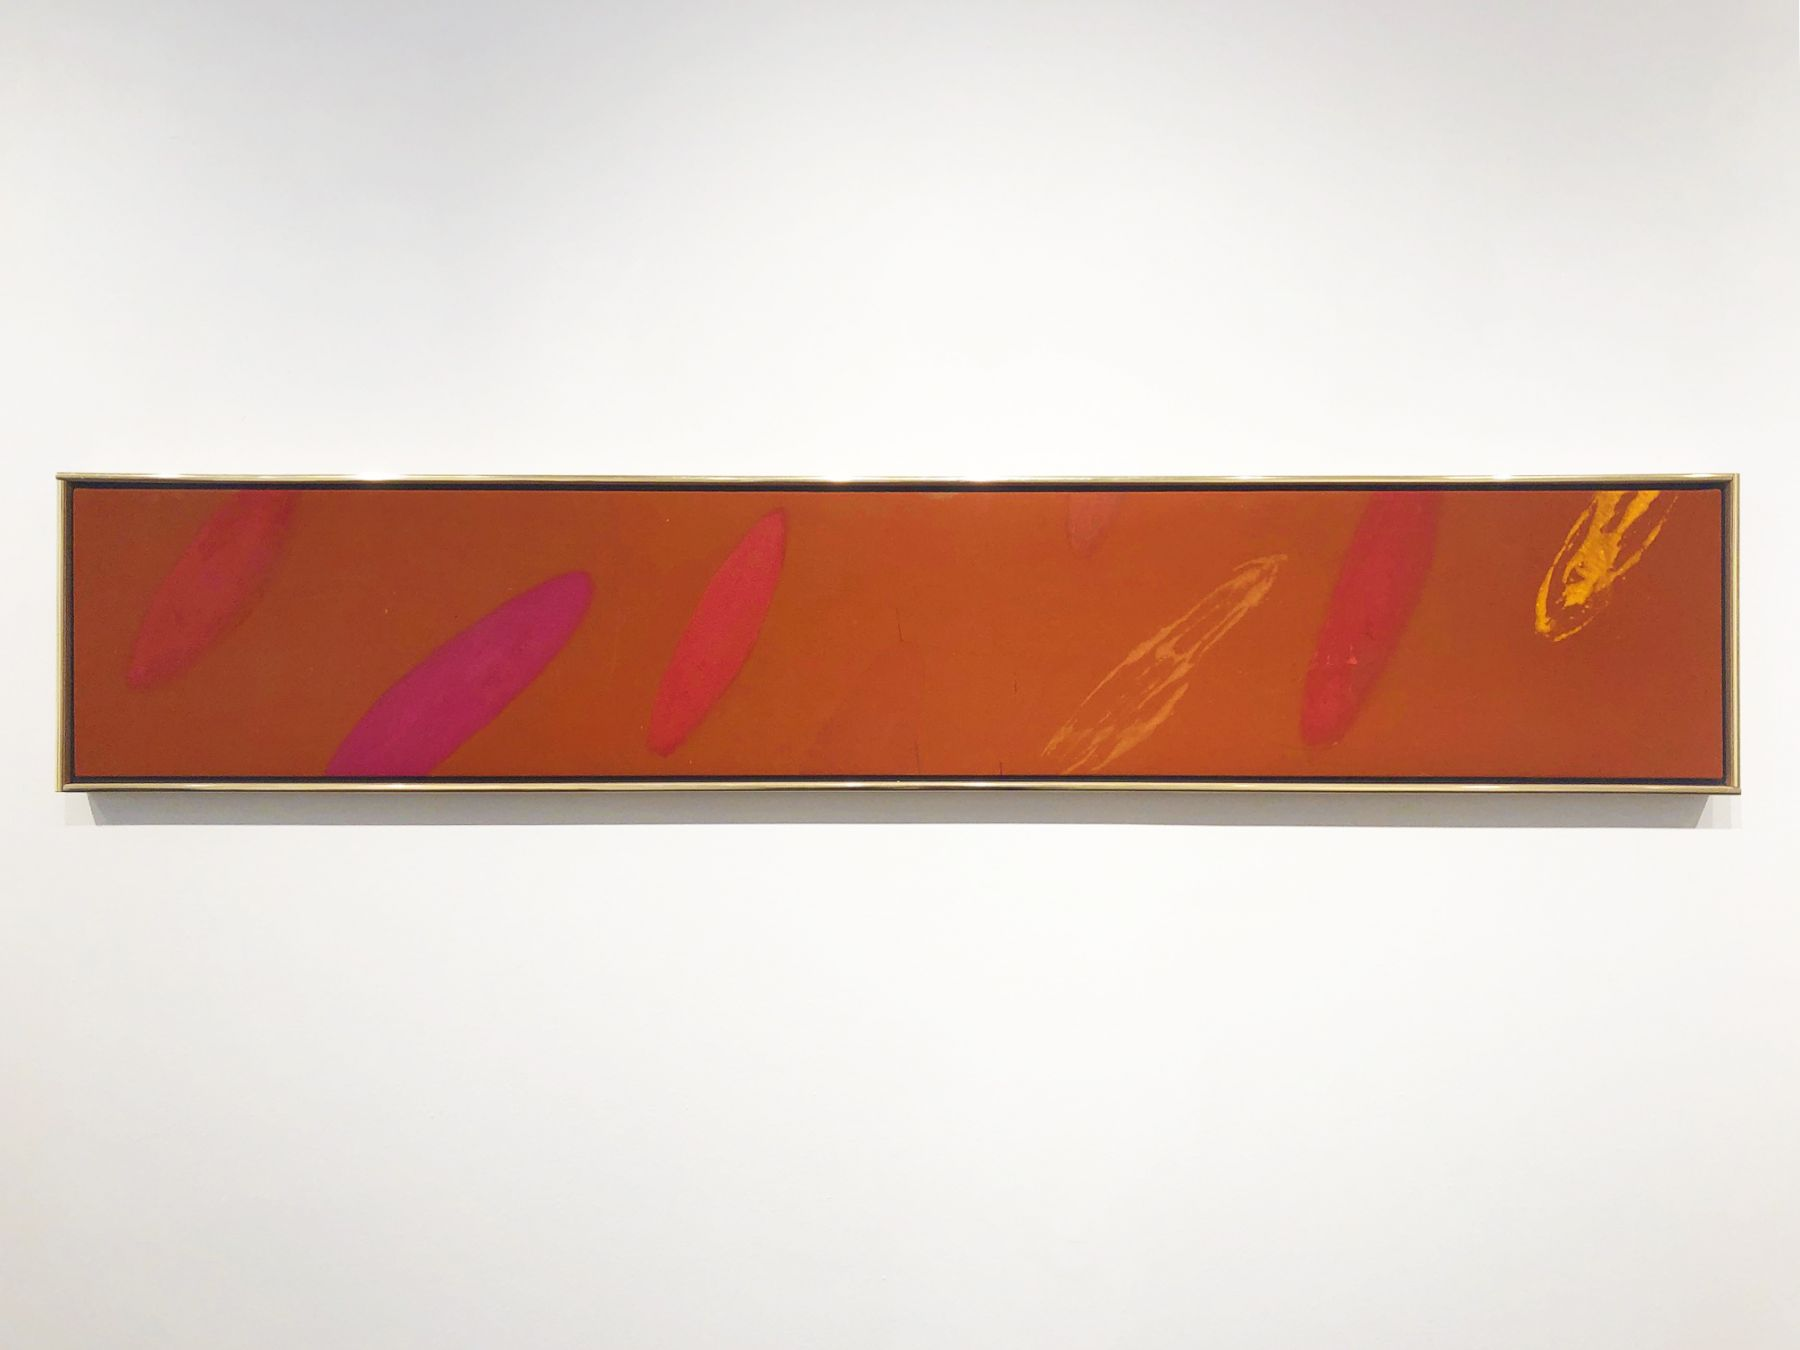 Larry Poons, Untitled, 1968